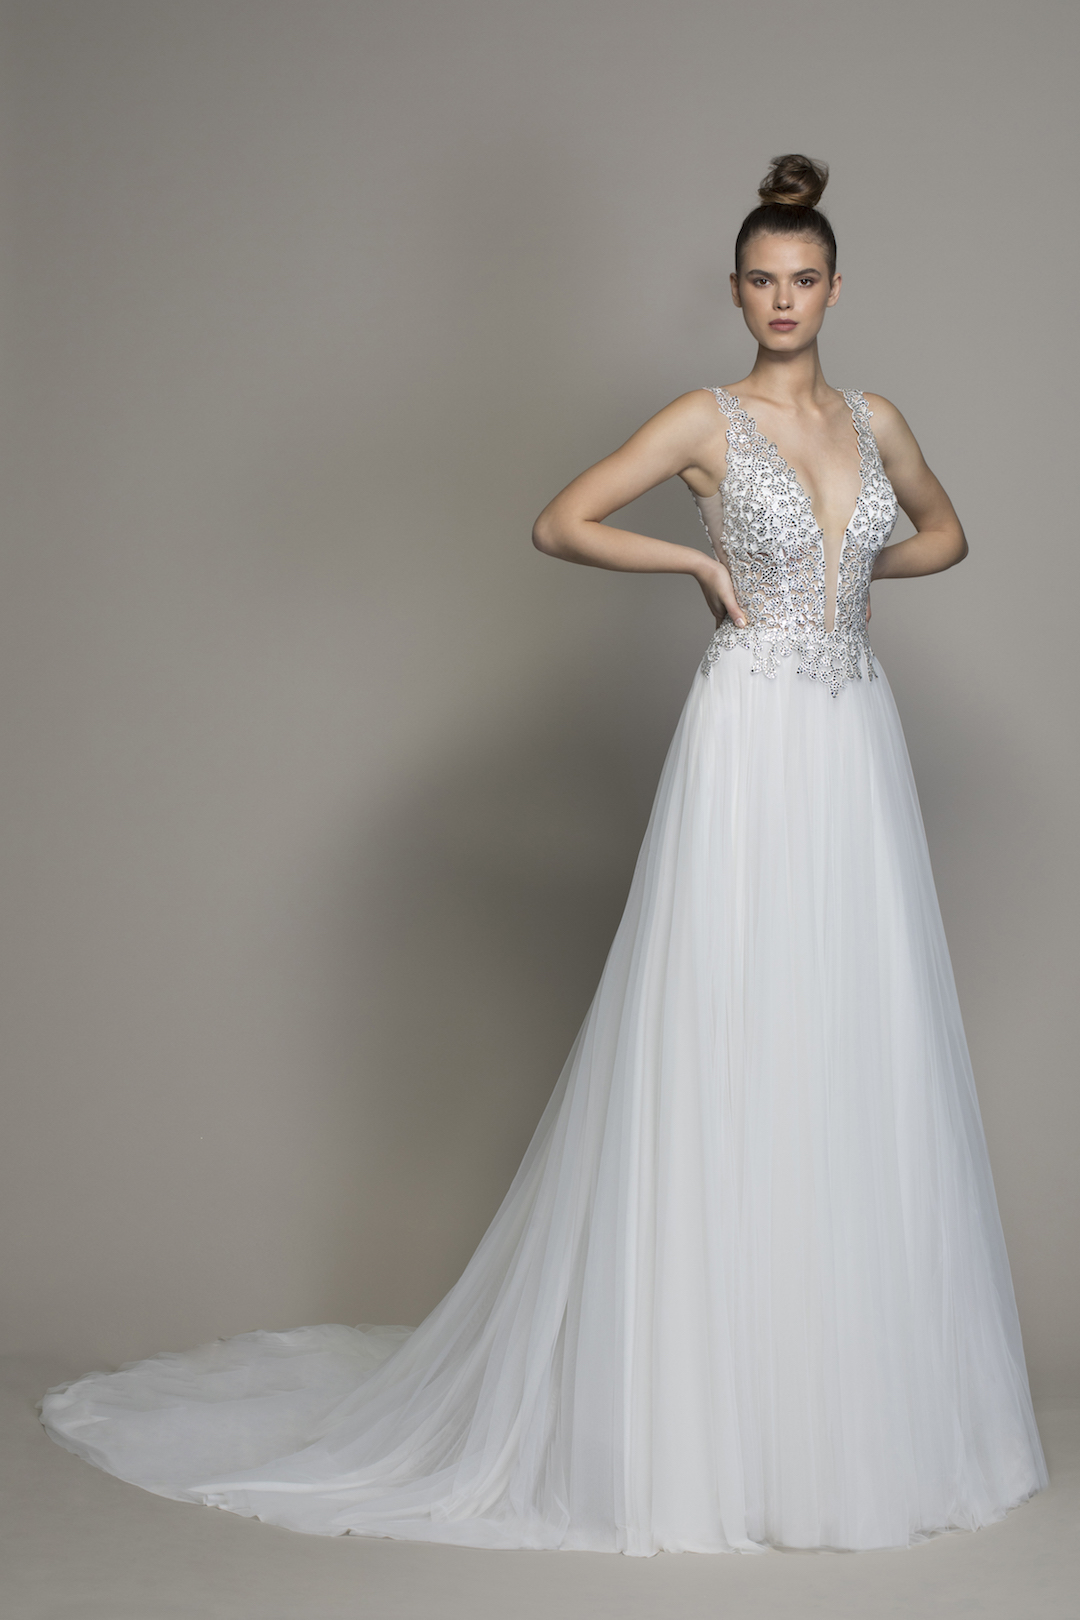 Pnina Tornai's new LOVE 2020 Collection is out! This is style 14743